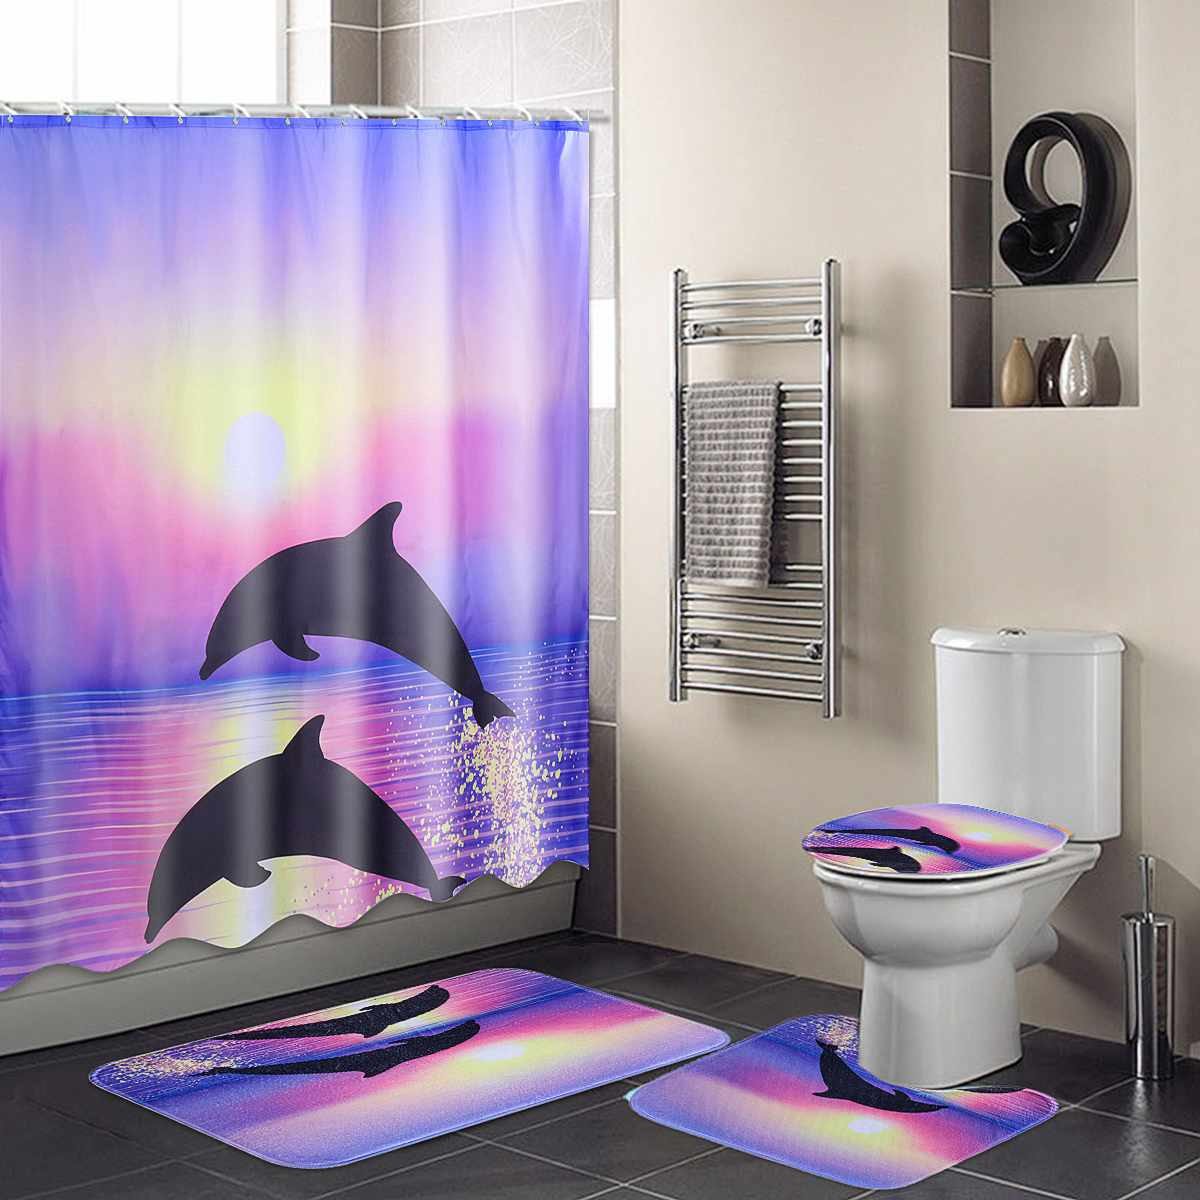 Dolphin Waterproof Bathroom Shower Curtain Toilet Cover Mat Non-Slip Rug Set